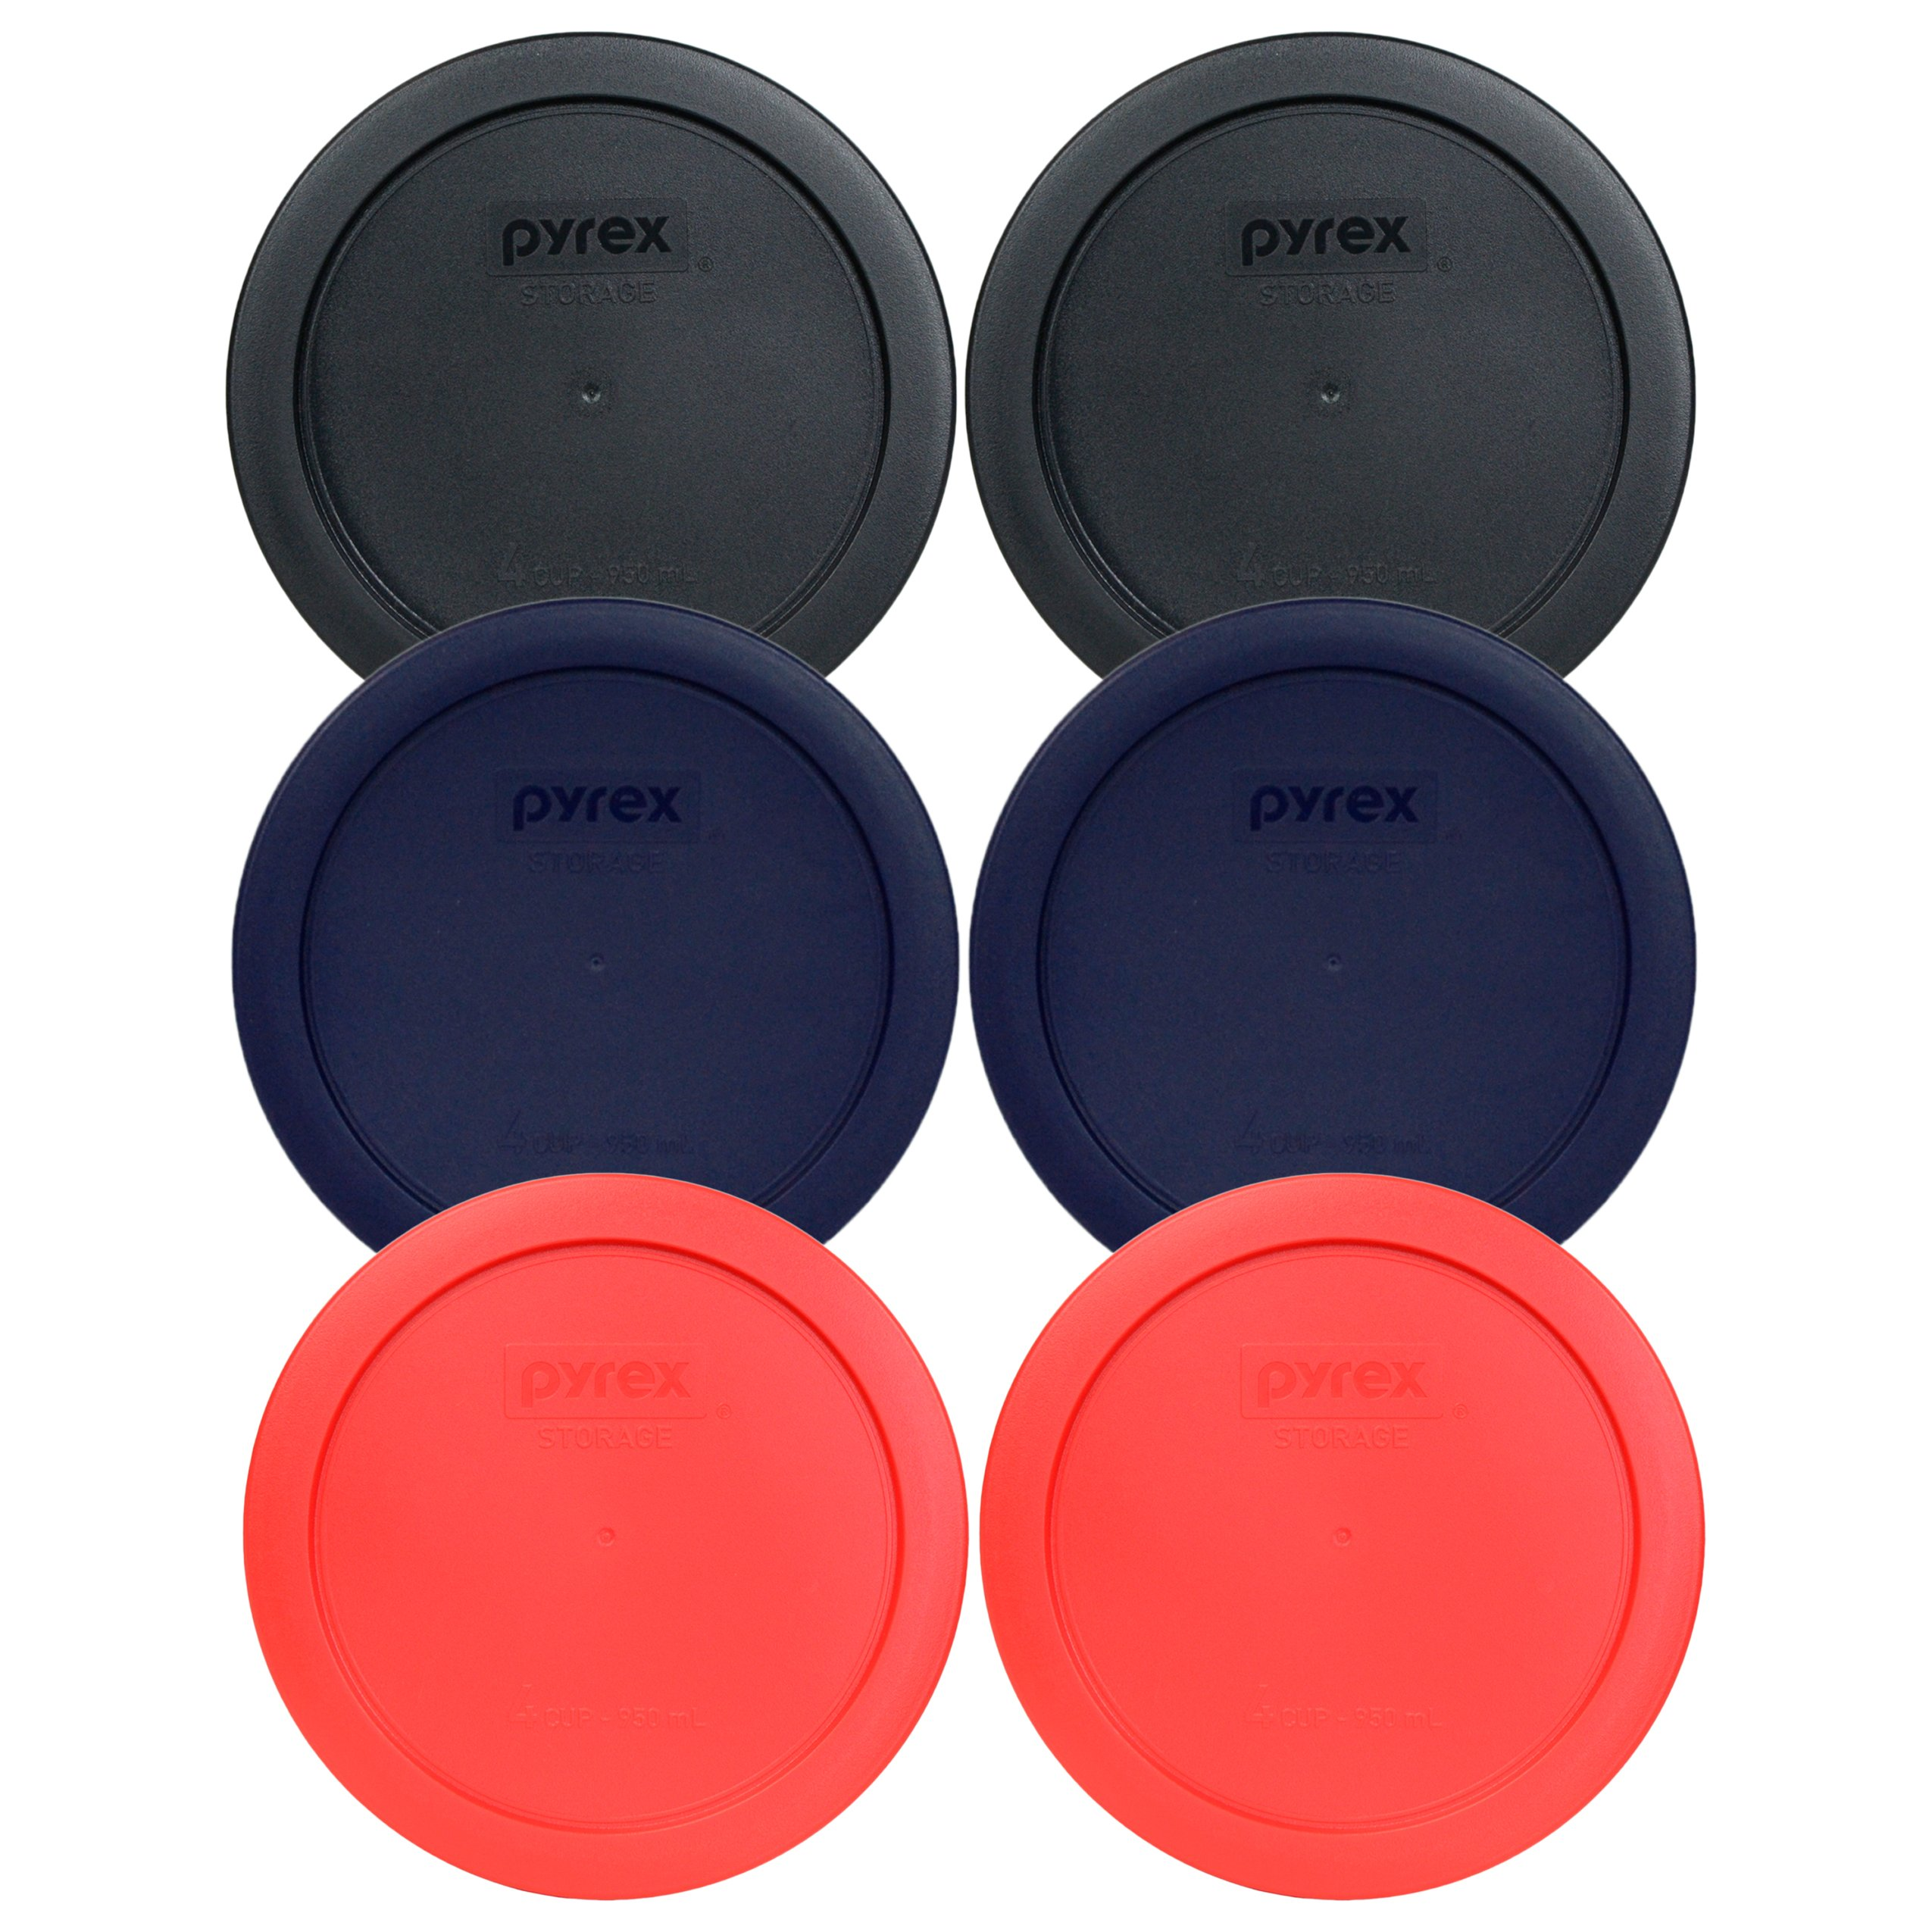 Pyrex 7201-PC 6'' 4 Cup Lids for Glass Bowl (2-Black, 2-Blue and 2-Red)